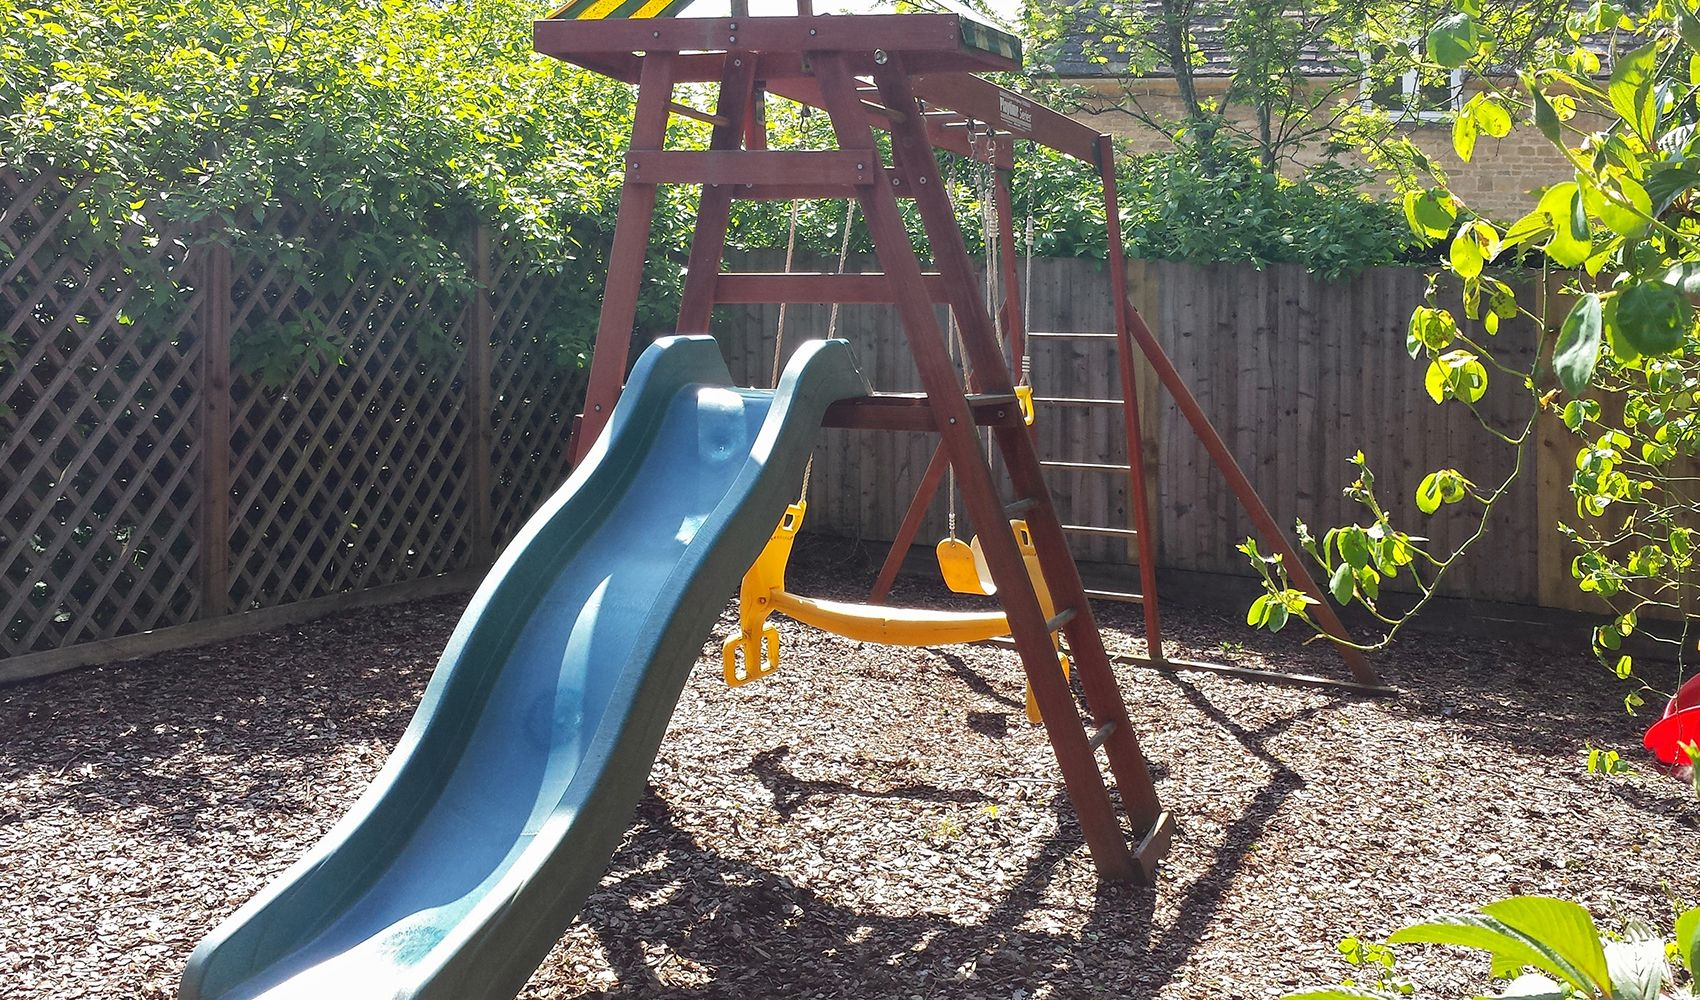 There's a child's play corner with a swing and seesaw (shared with Bookers)